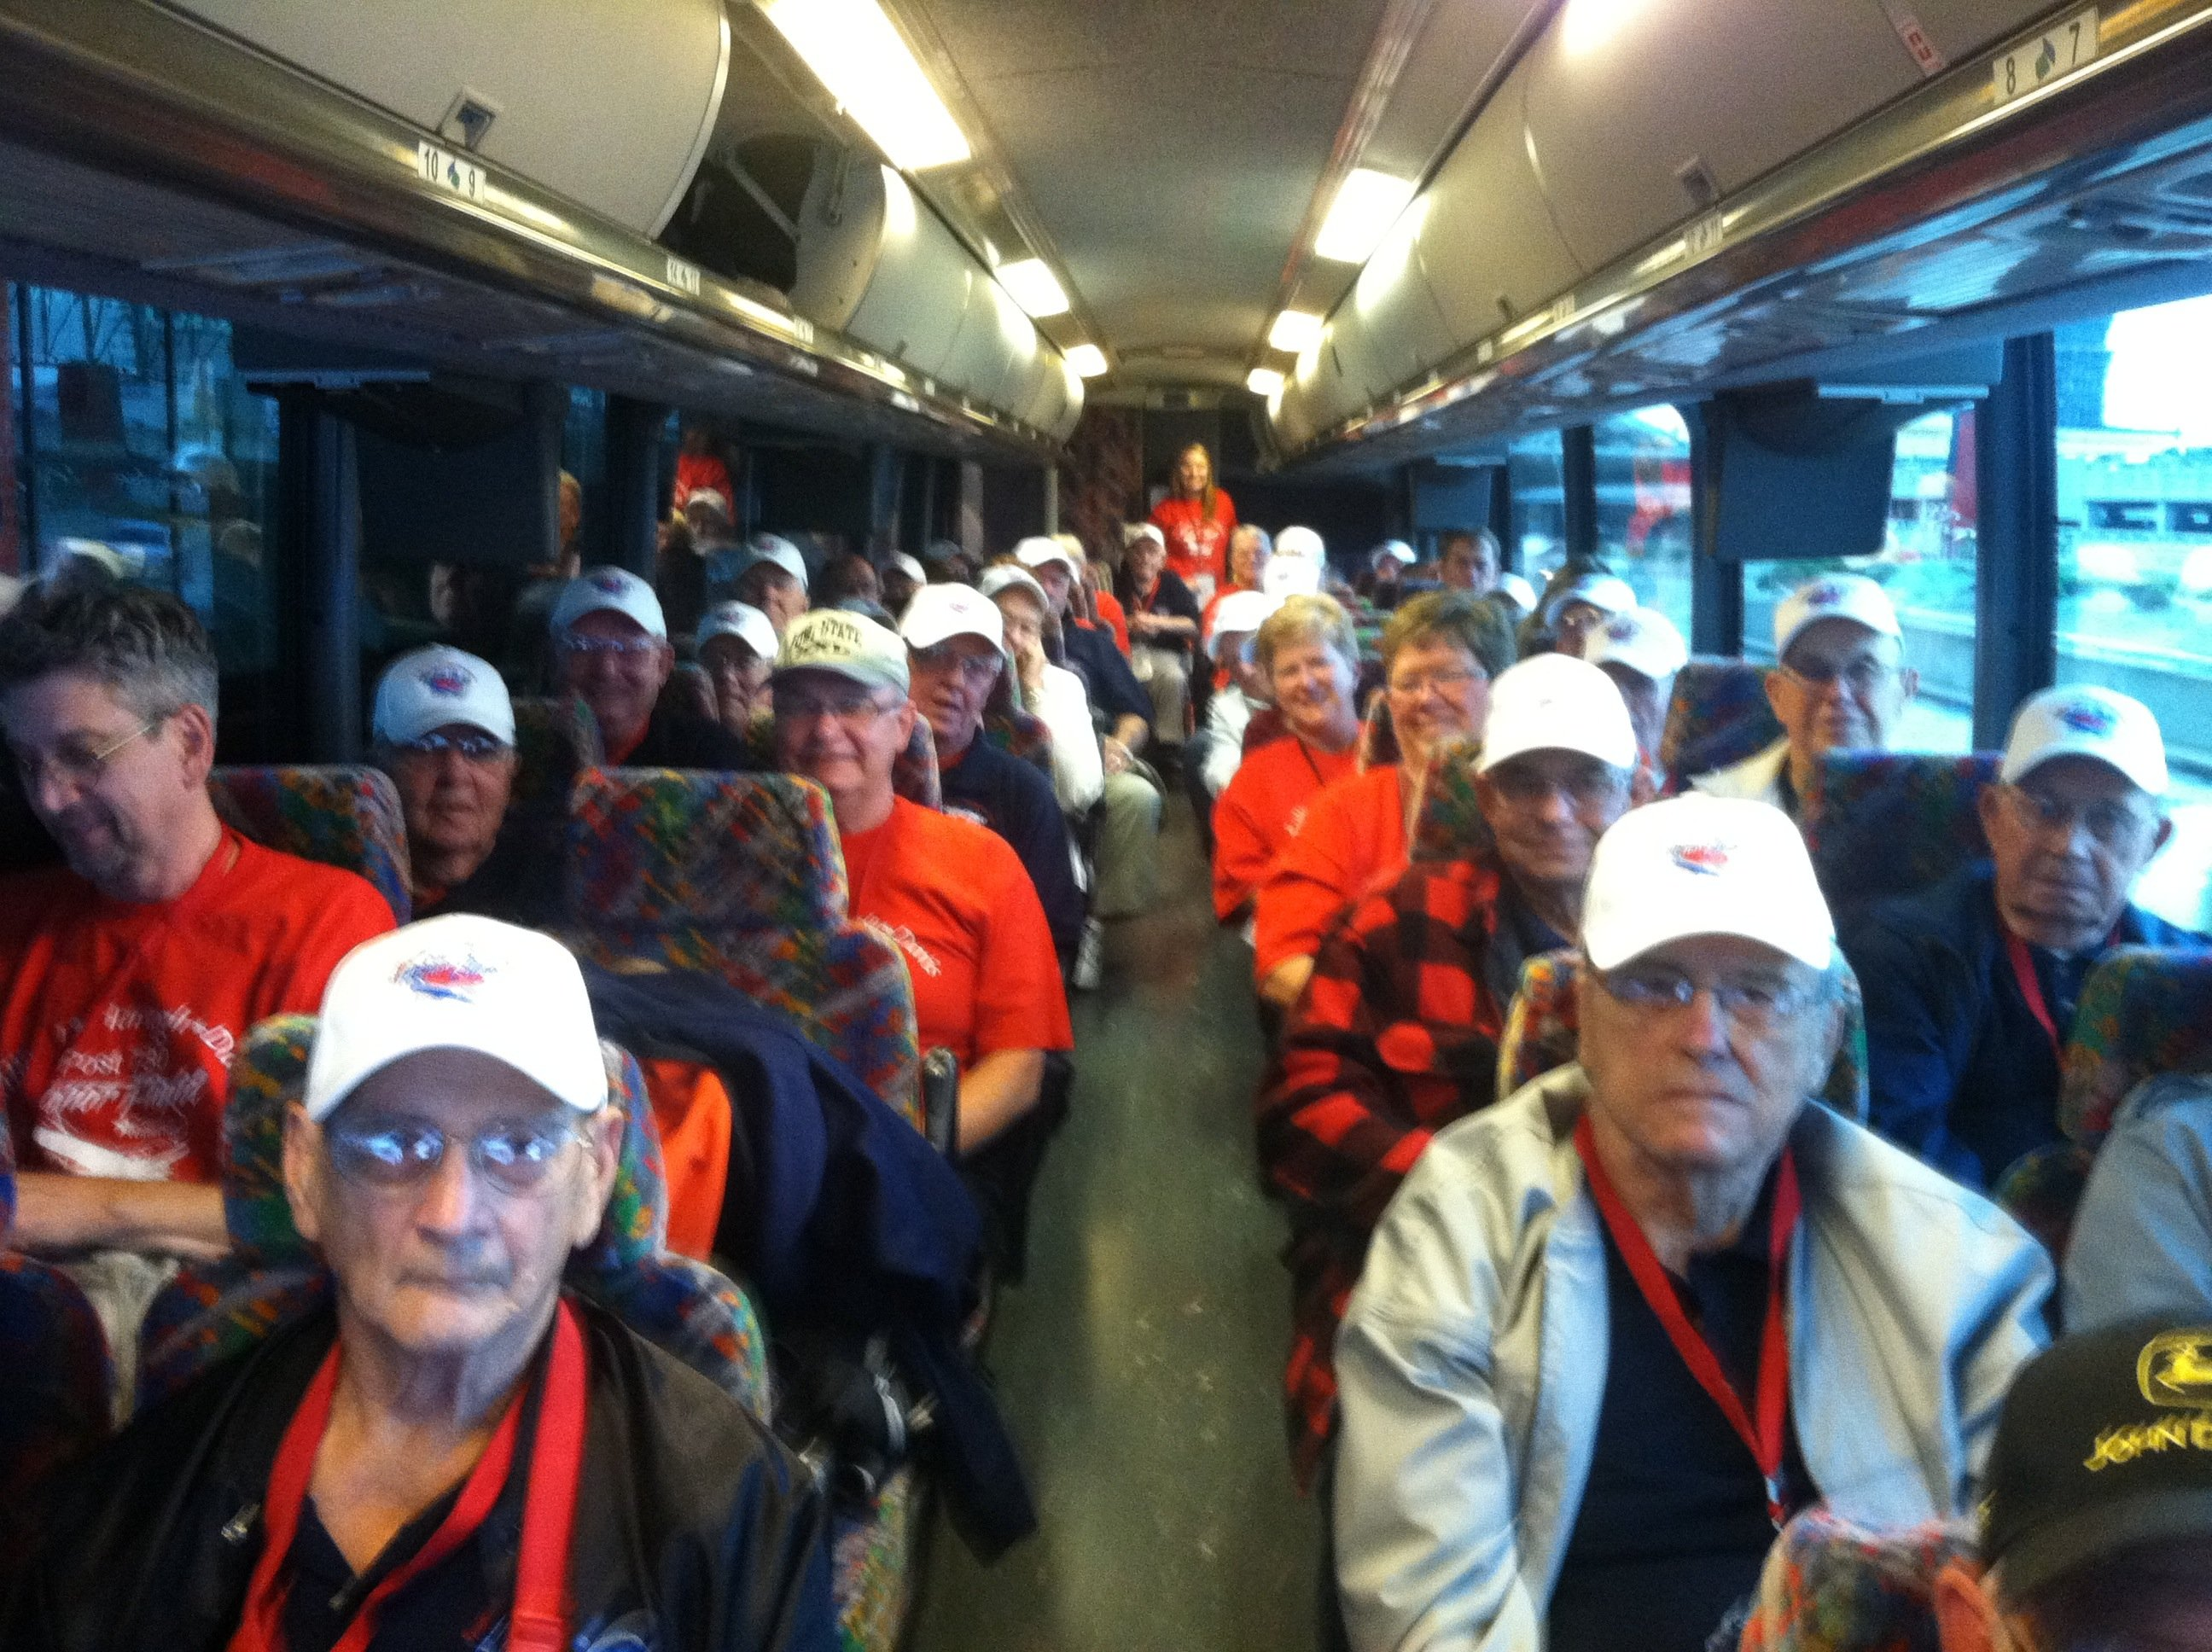 Iowa Honor Flight veterans on the bus in DC, heading out Tuesday to visit memorials